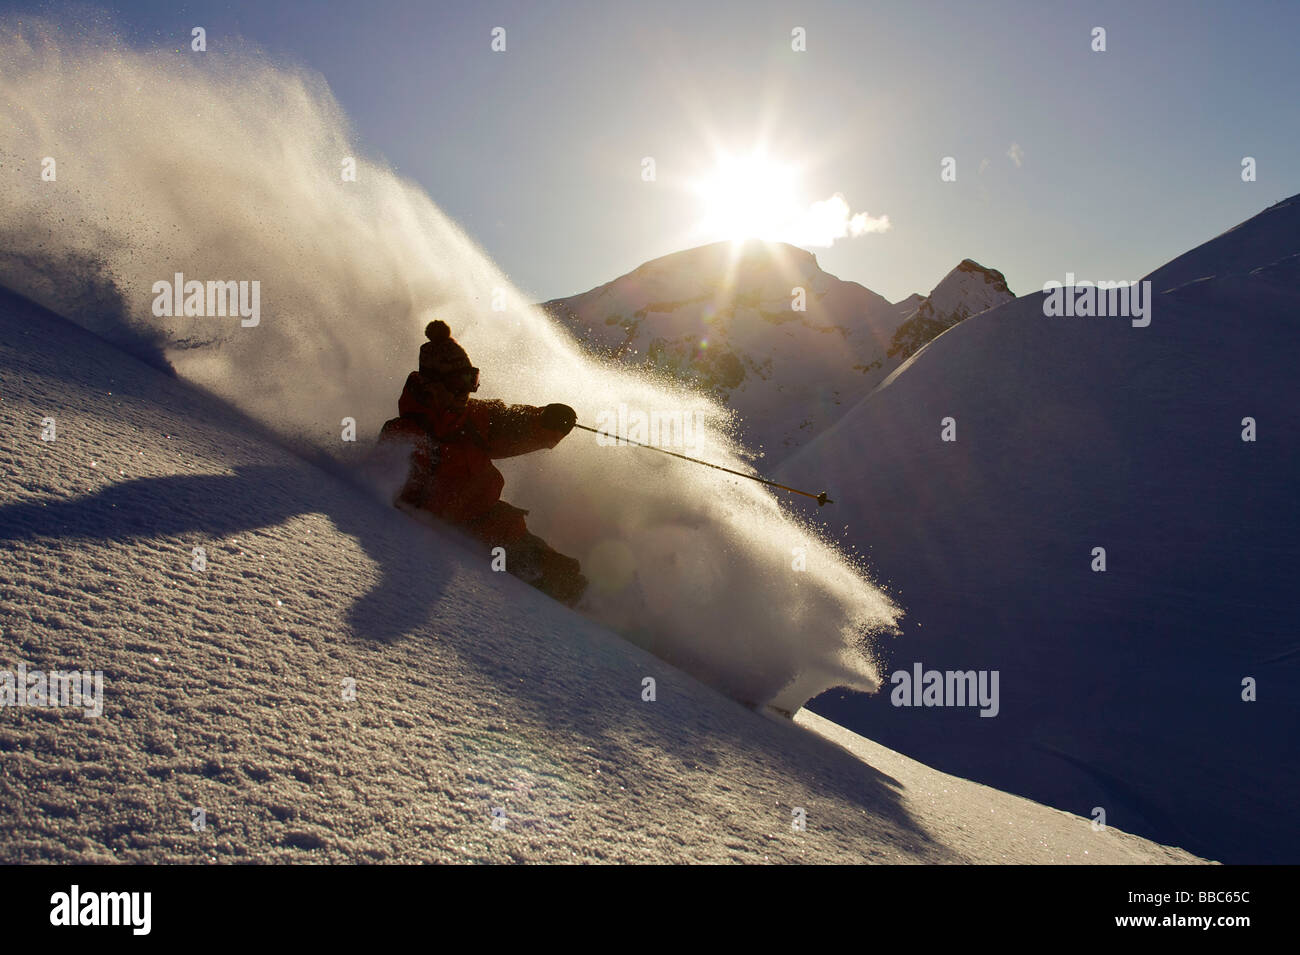 Skier turning off piste. - Stock Image